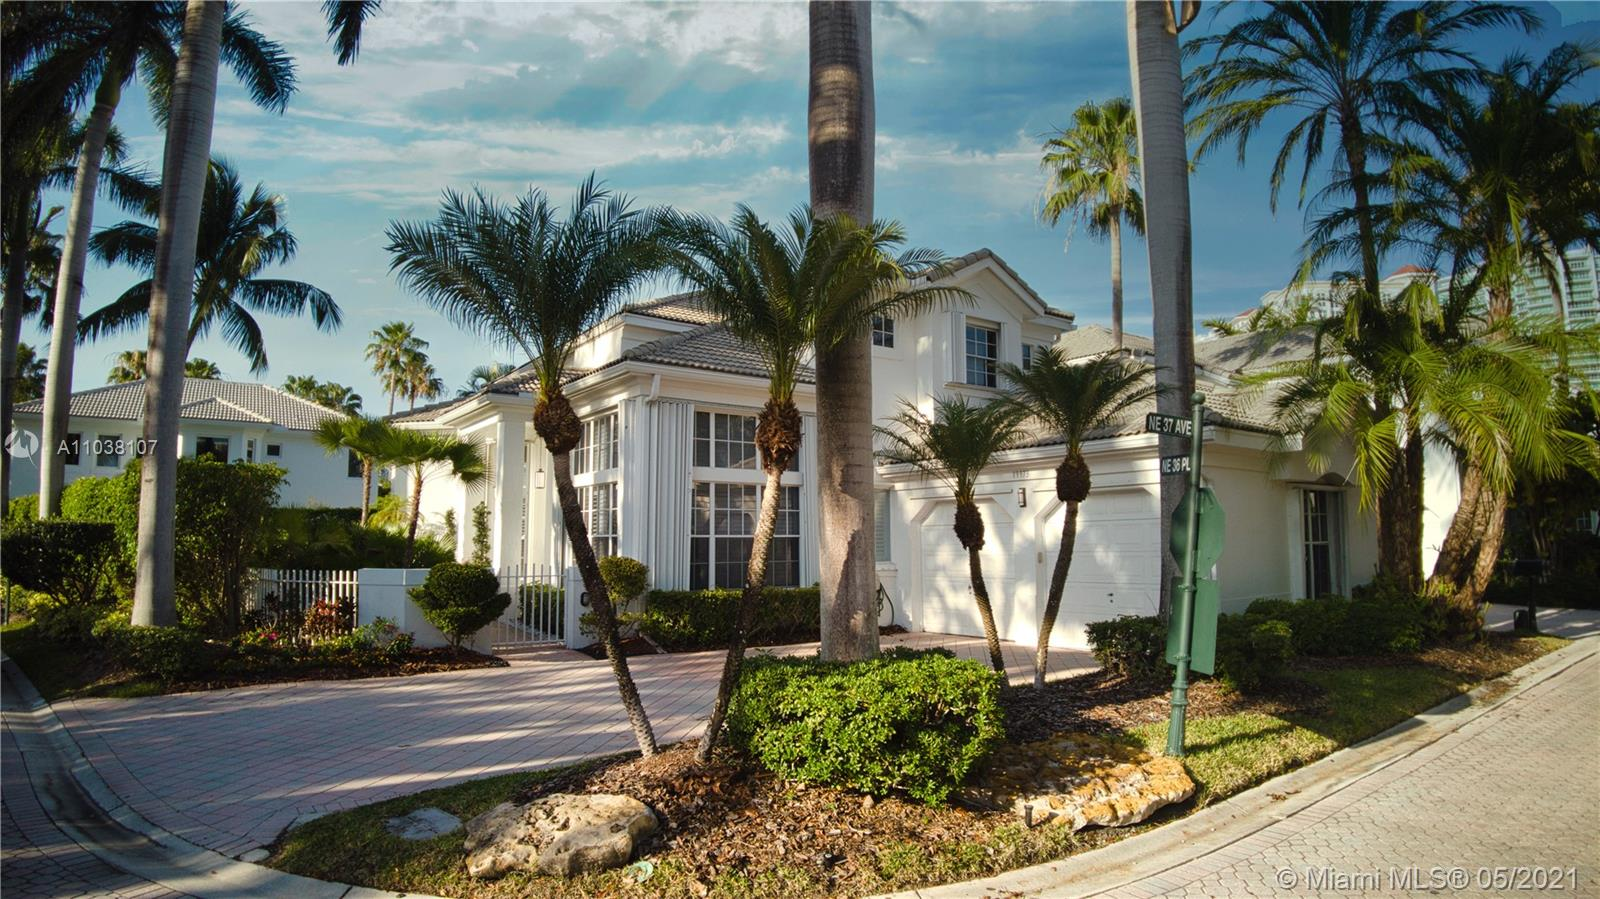 Great location in Aventura. Corner lot 4 bedrooms 3.5 bathrooms plus an office/den in an exclusive quiet gated community. The master bedroom is on the first floor with direct exit to the terrace. Kosher kitchen. Walking distance to places of worship.